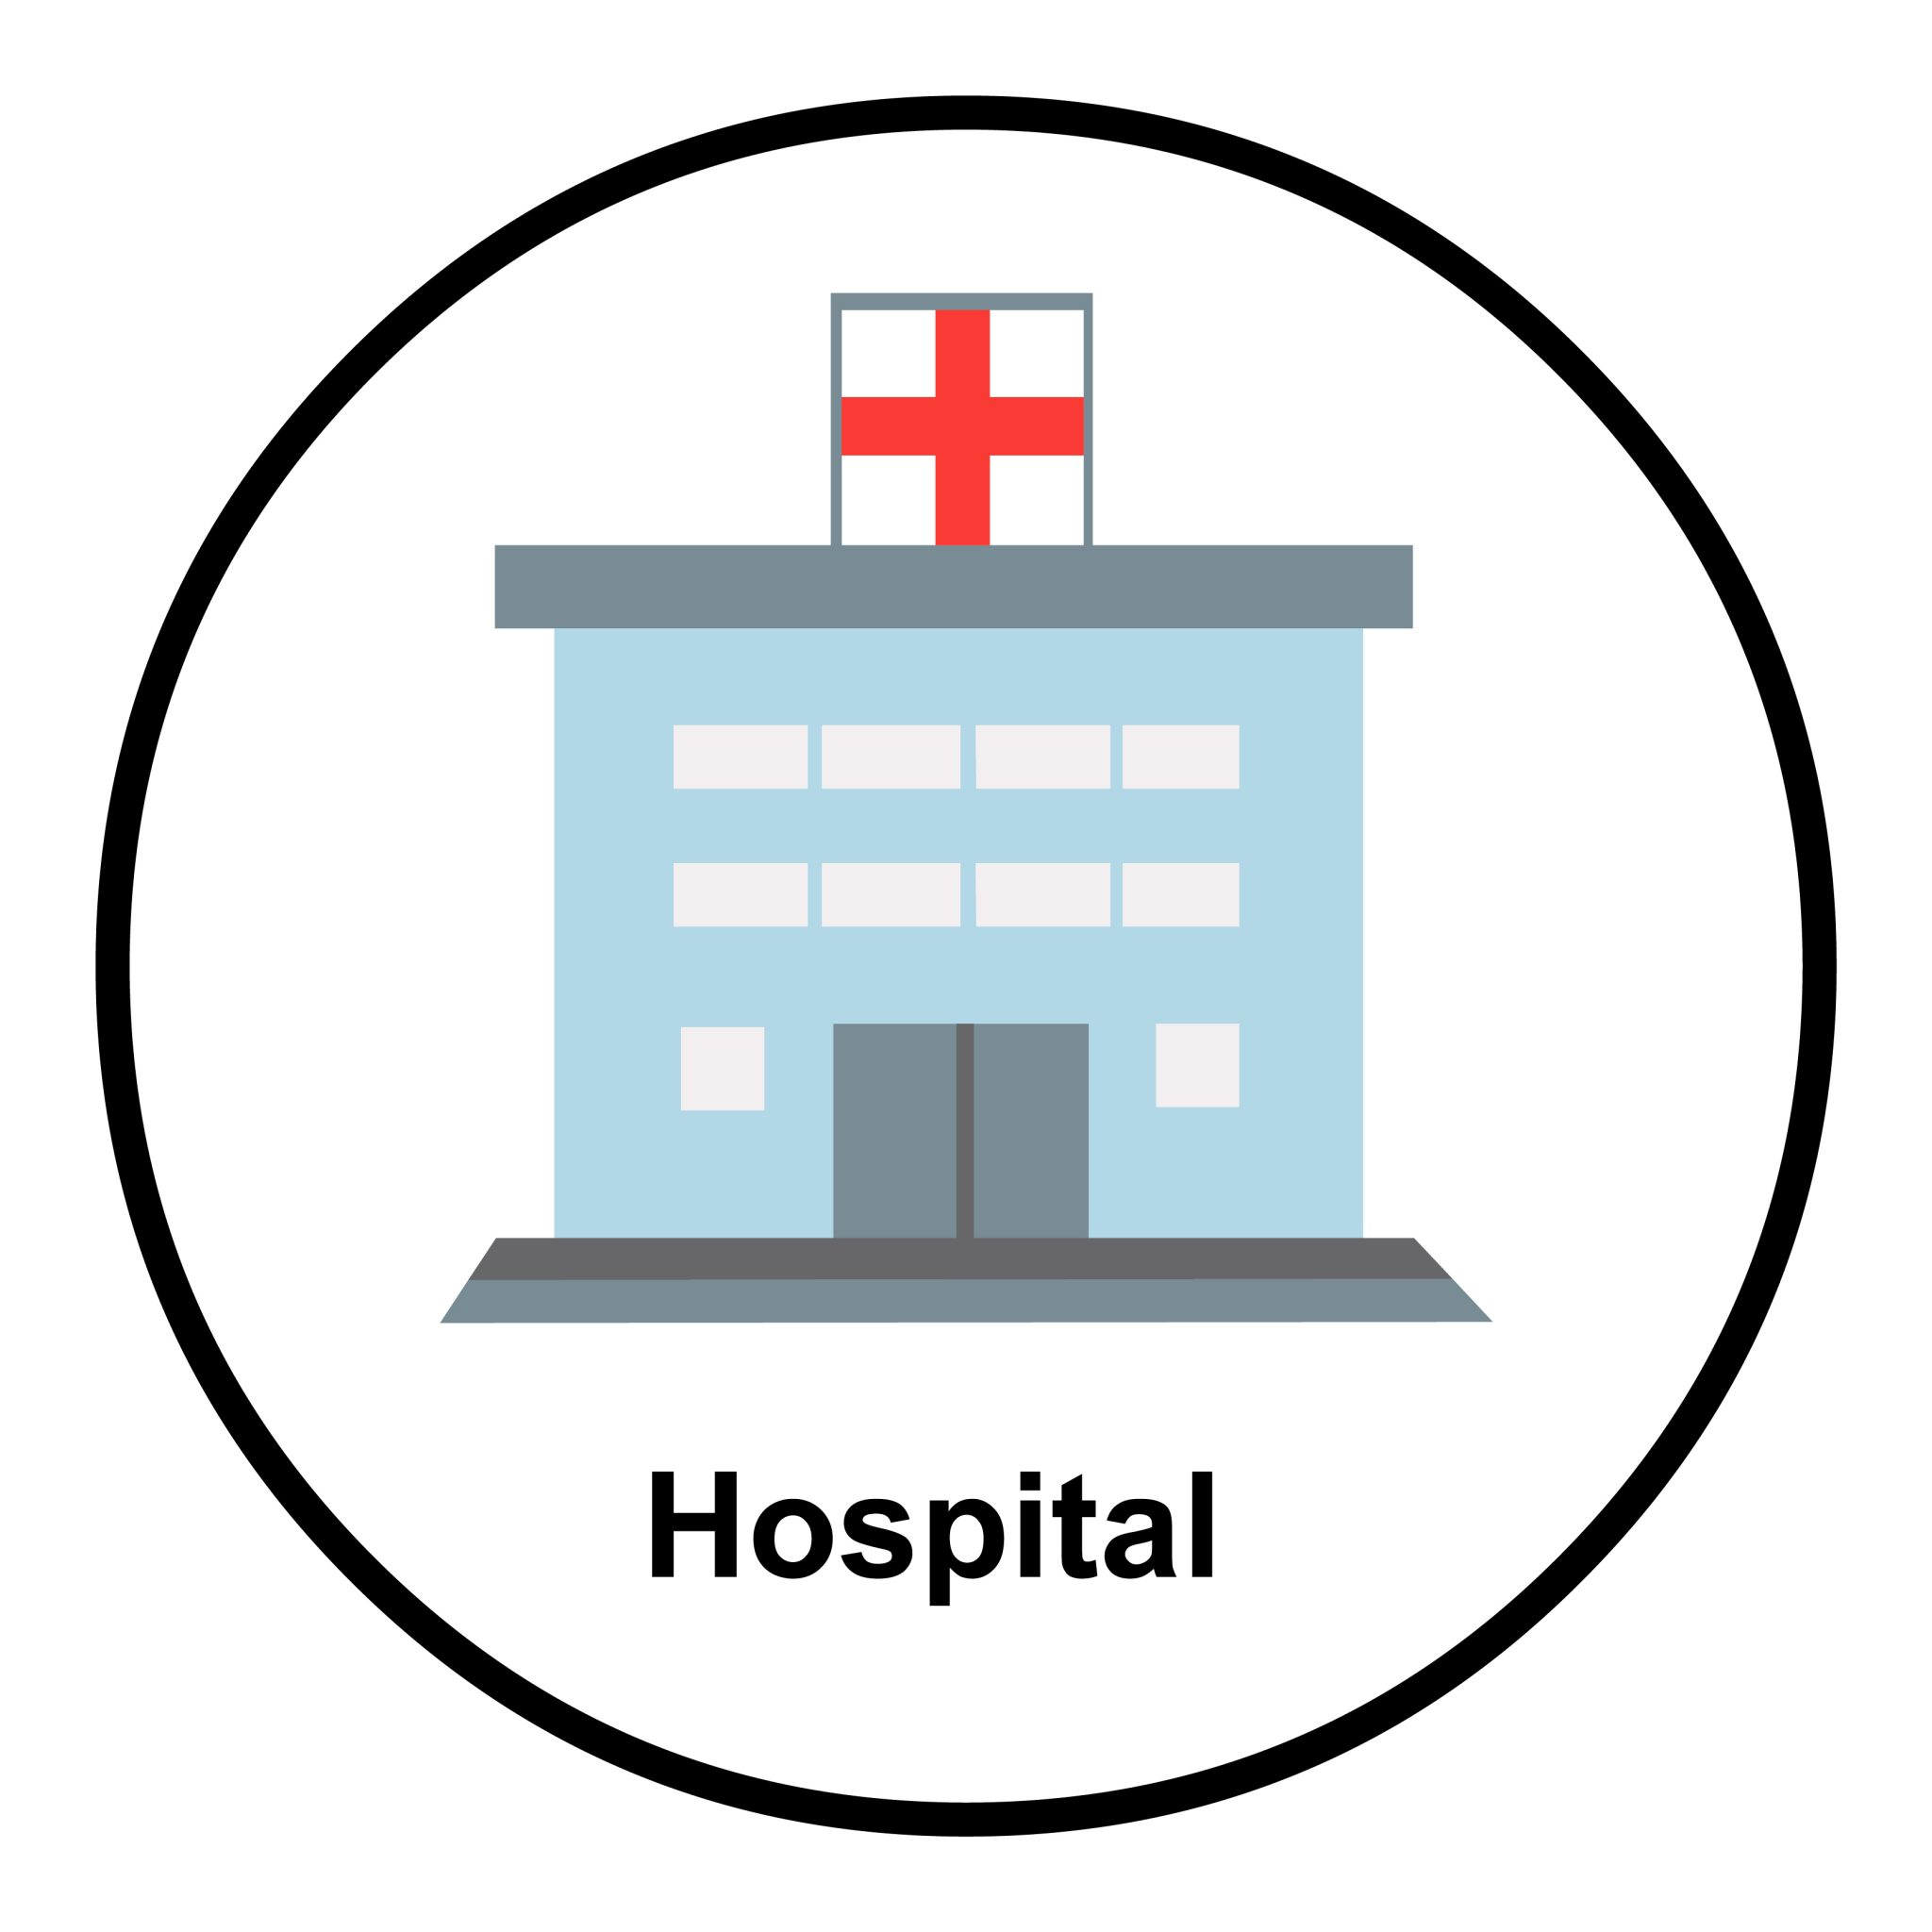 hospital and emergency